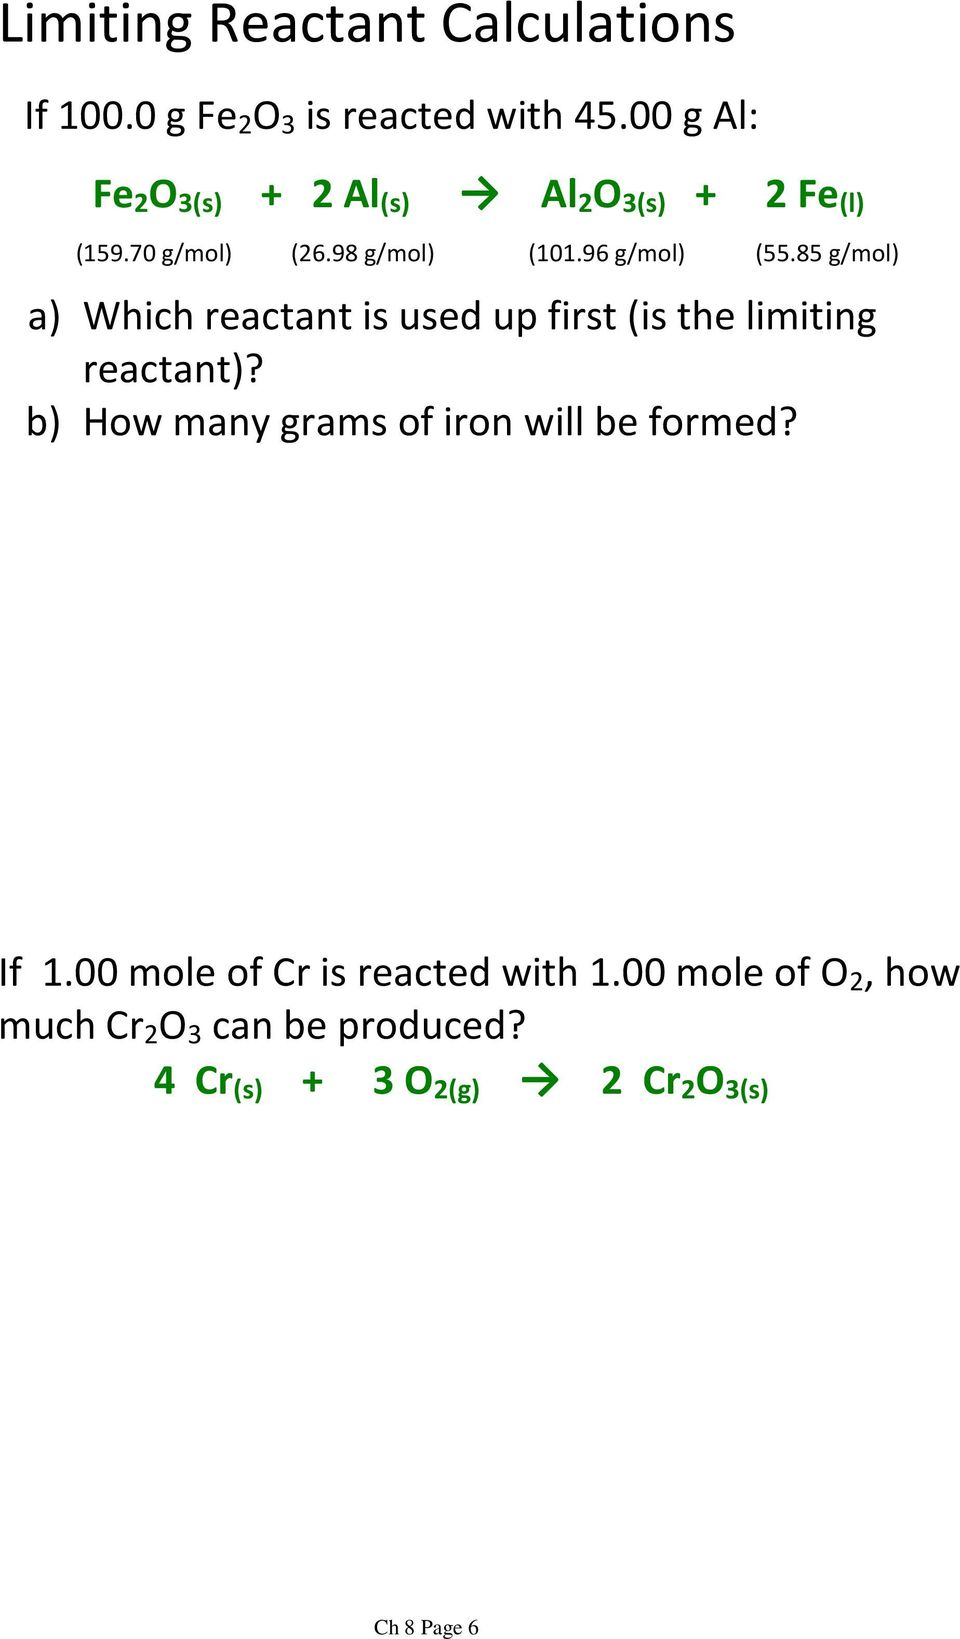 96 g/mol) (55.85 g/mol) Which reactant is used up first (is the limiting reactant)?